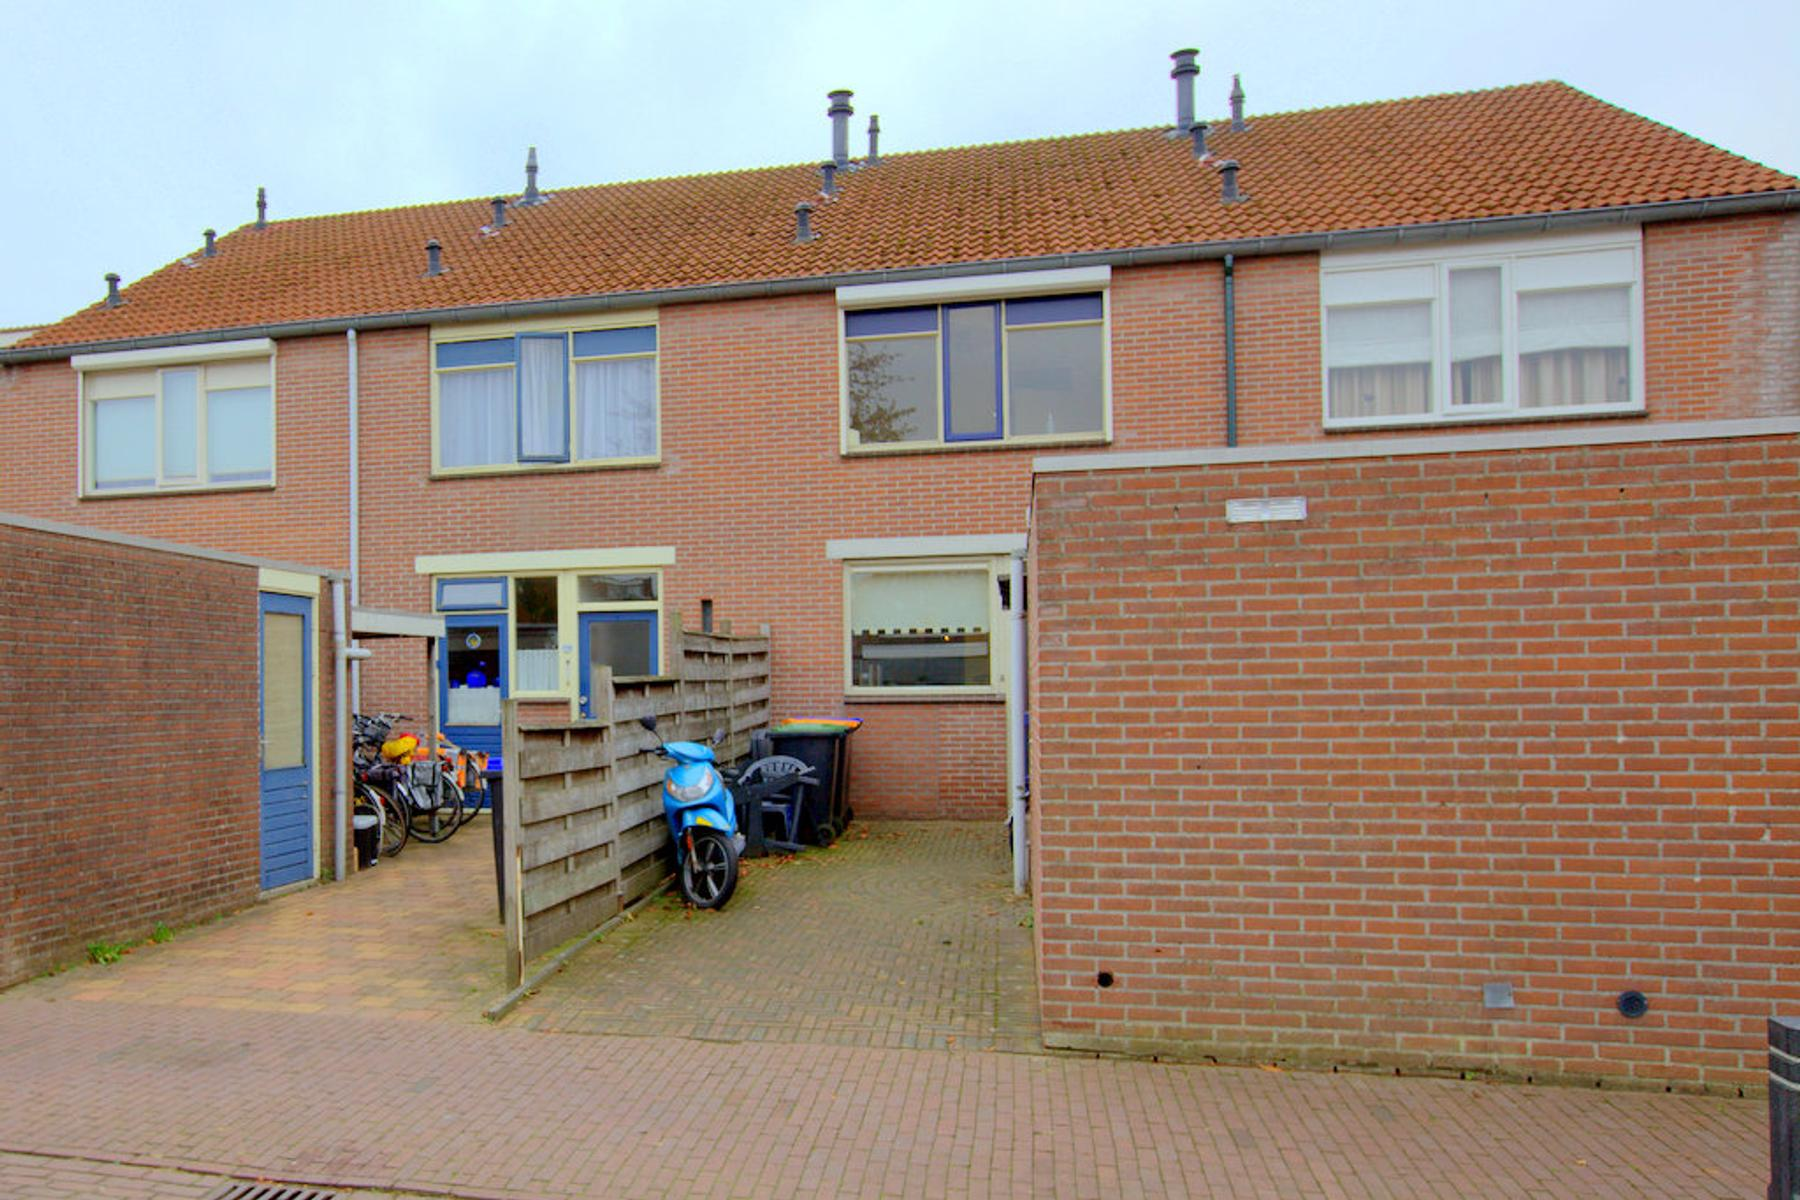 Thorbeckestraat 61 in Winterswijk 7103 GG